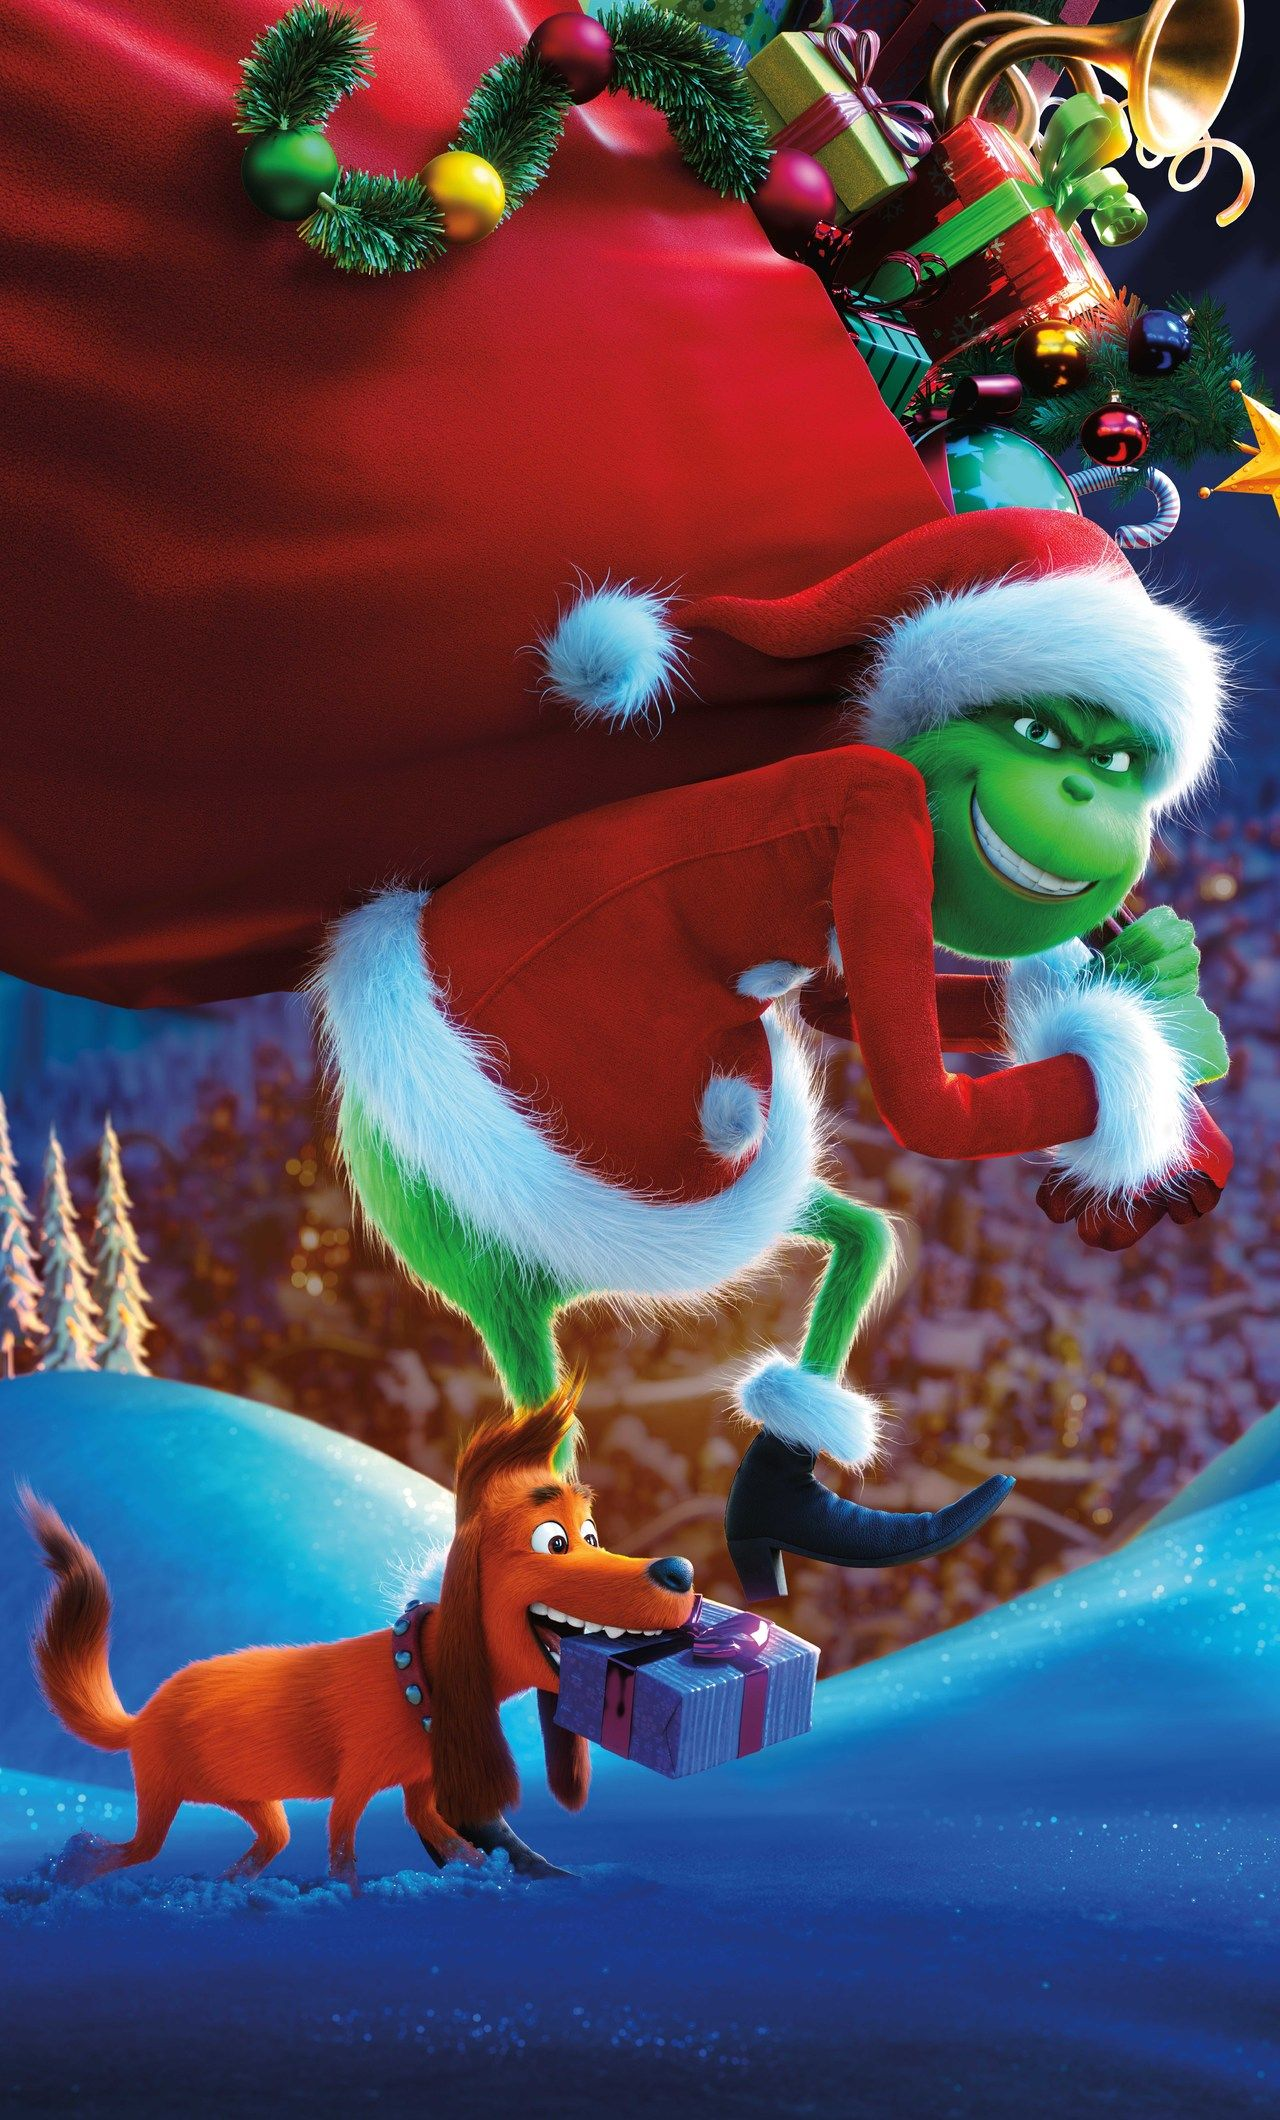 Grinch Iphone Wallpapers Top Free Grinch Iphone Backgrounds